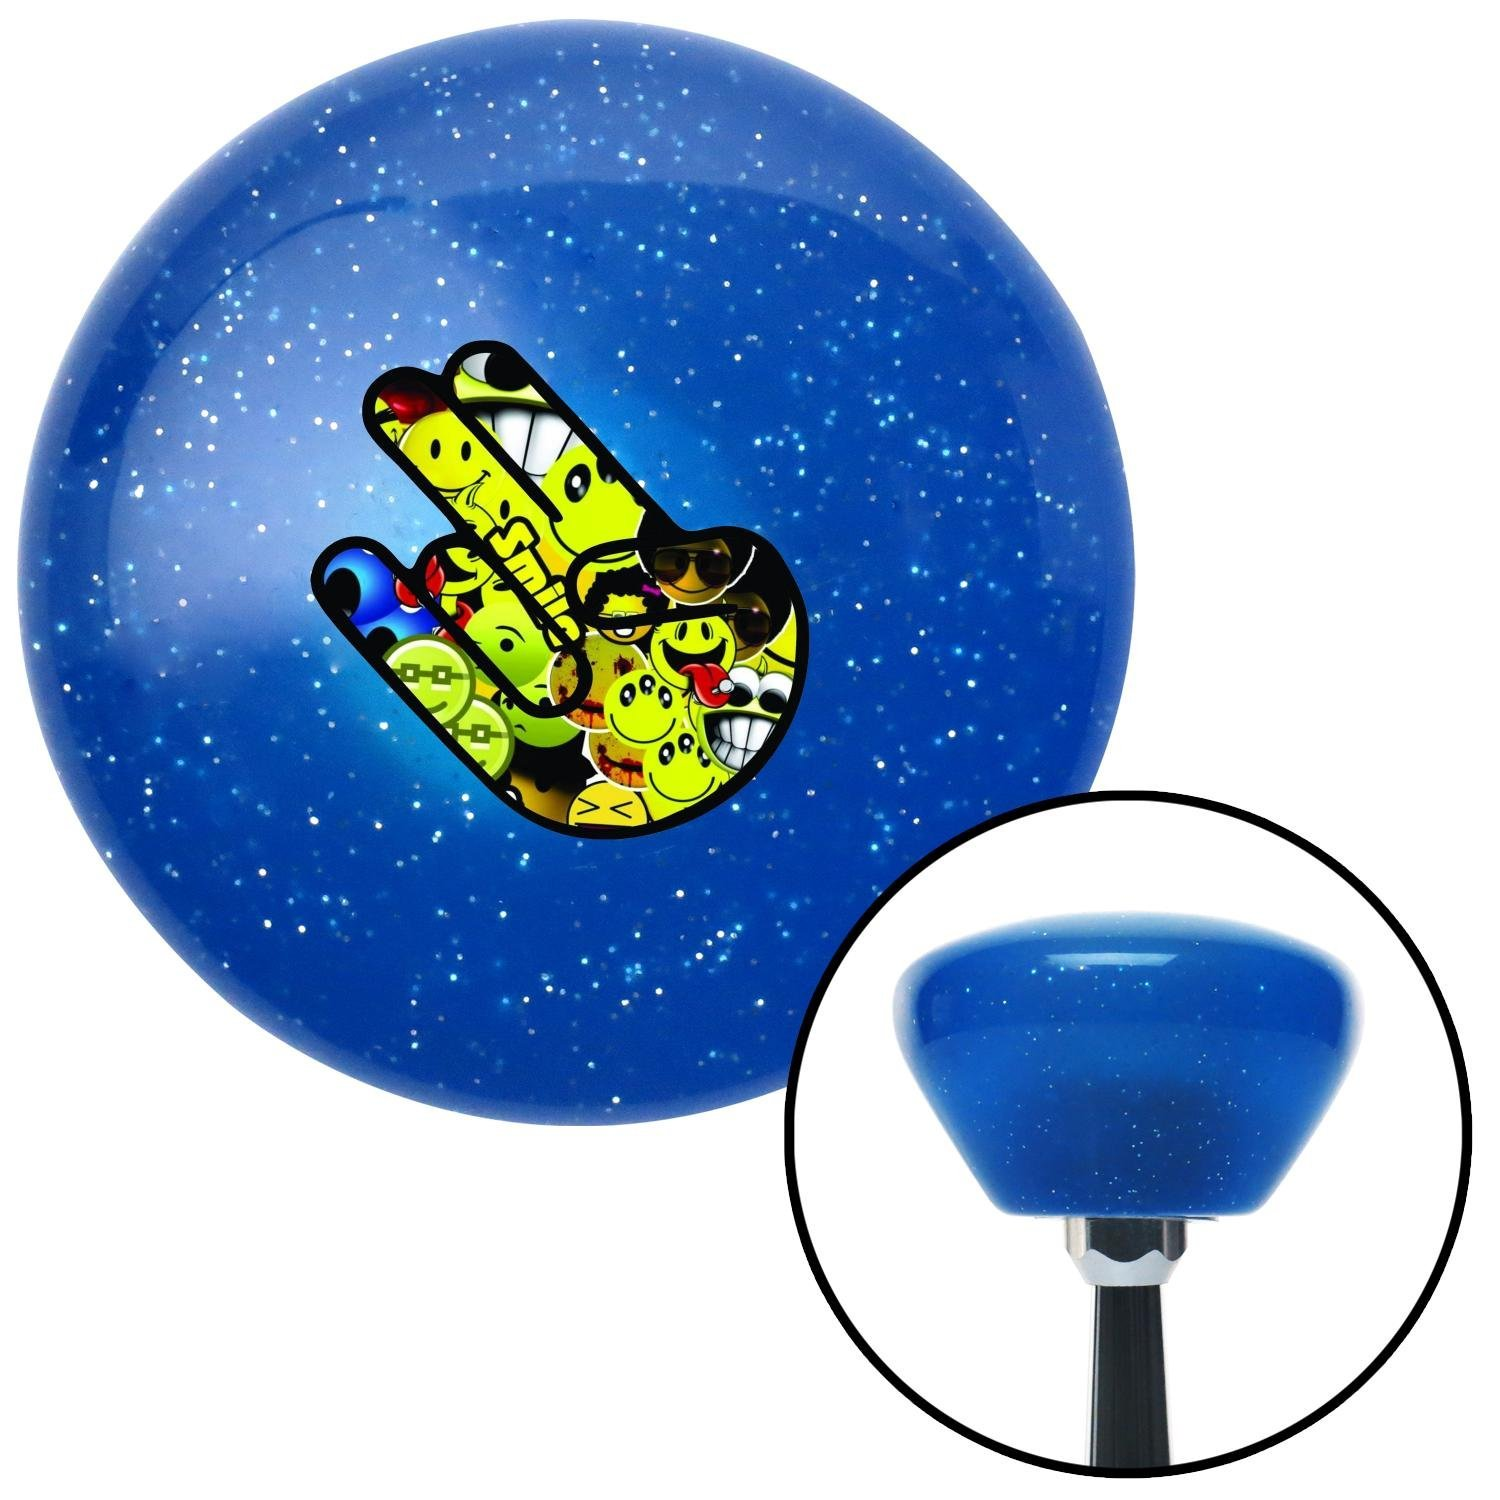 American Shifter 191415 Blue Retro Metal Flake Shift Knob with M16 x 1.5 Insert Smiley Face JDM Shocker Hand